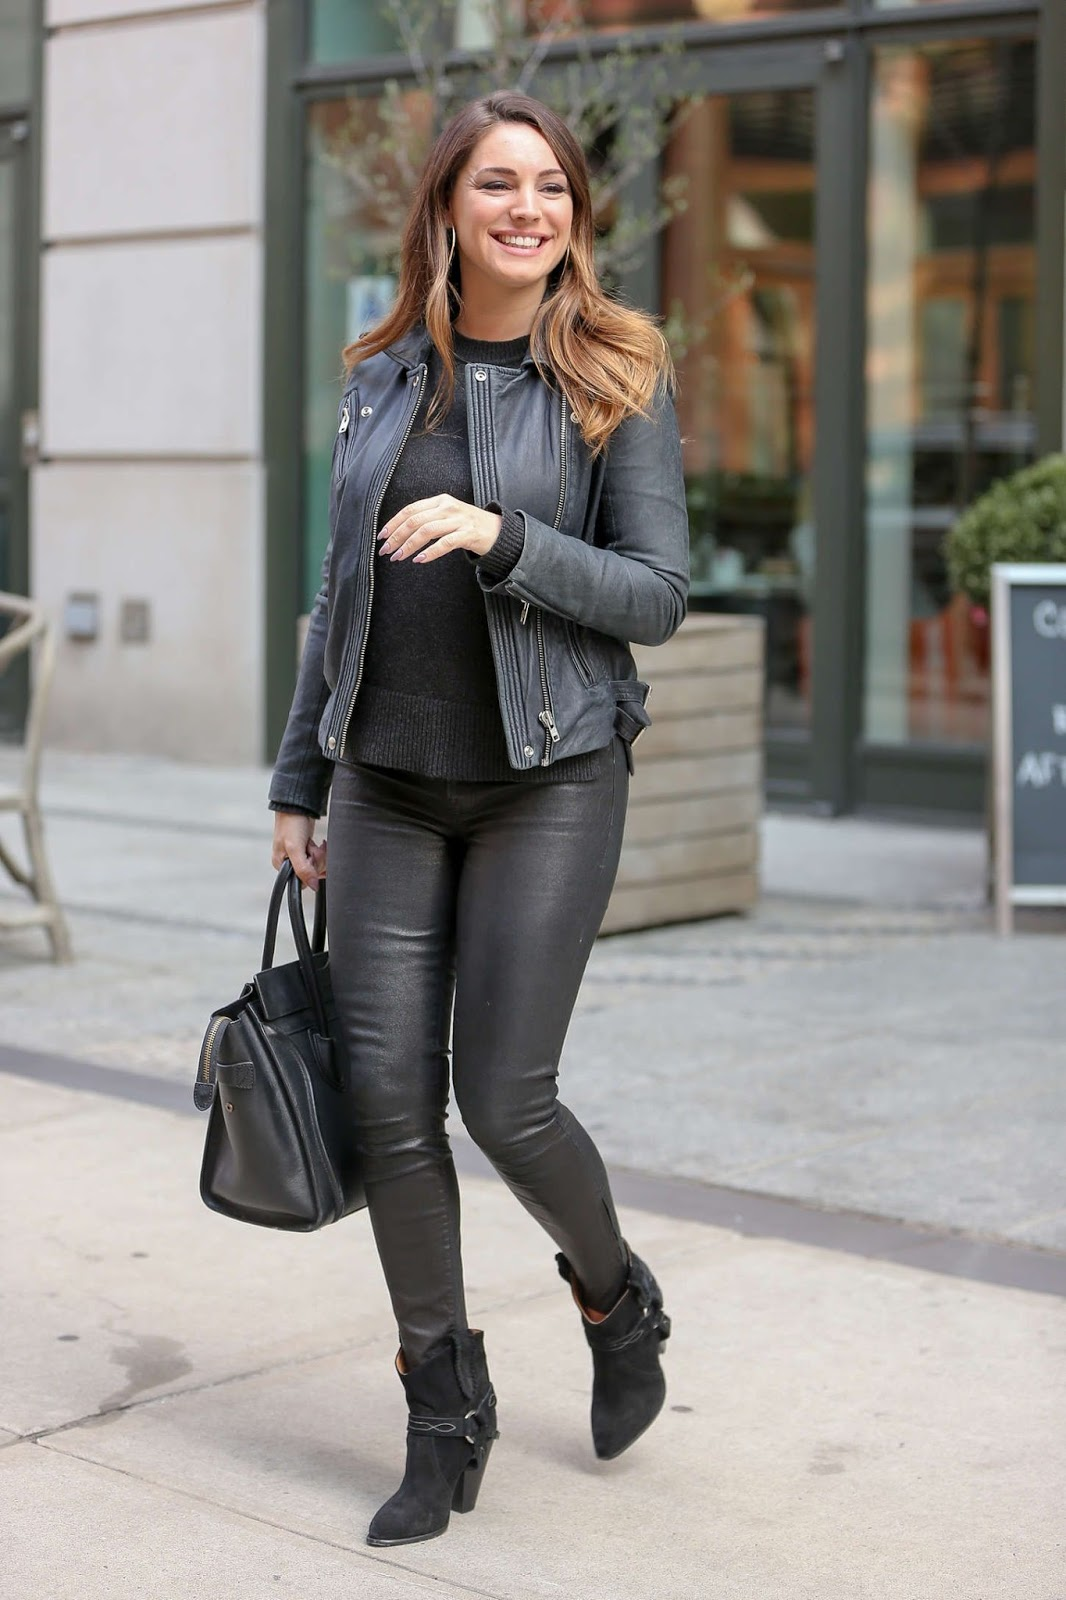 Kelly Brook in Leather Pants in New york city - Kelly Brook 2016